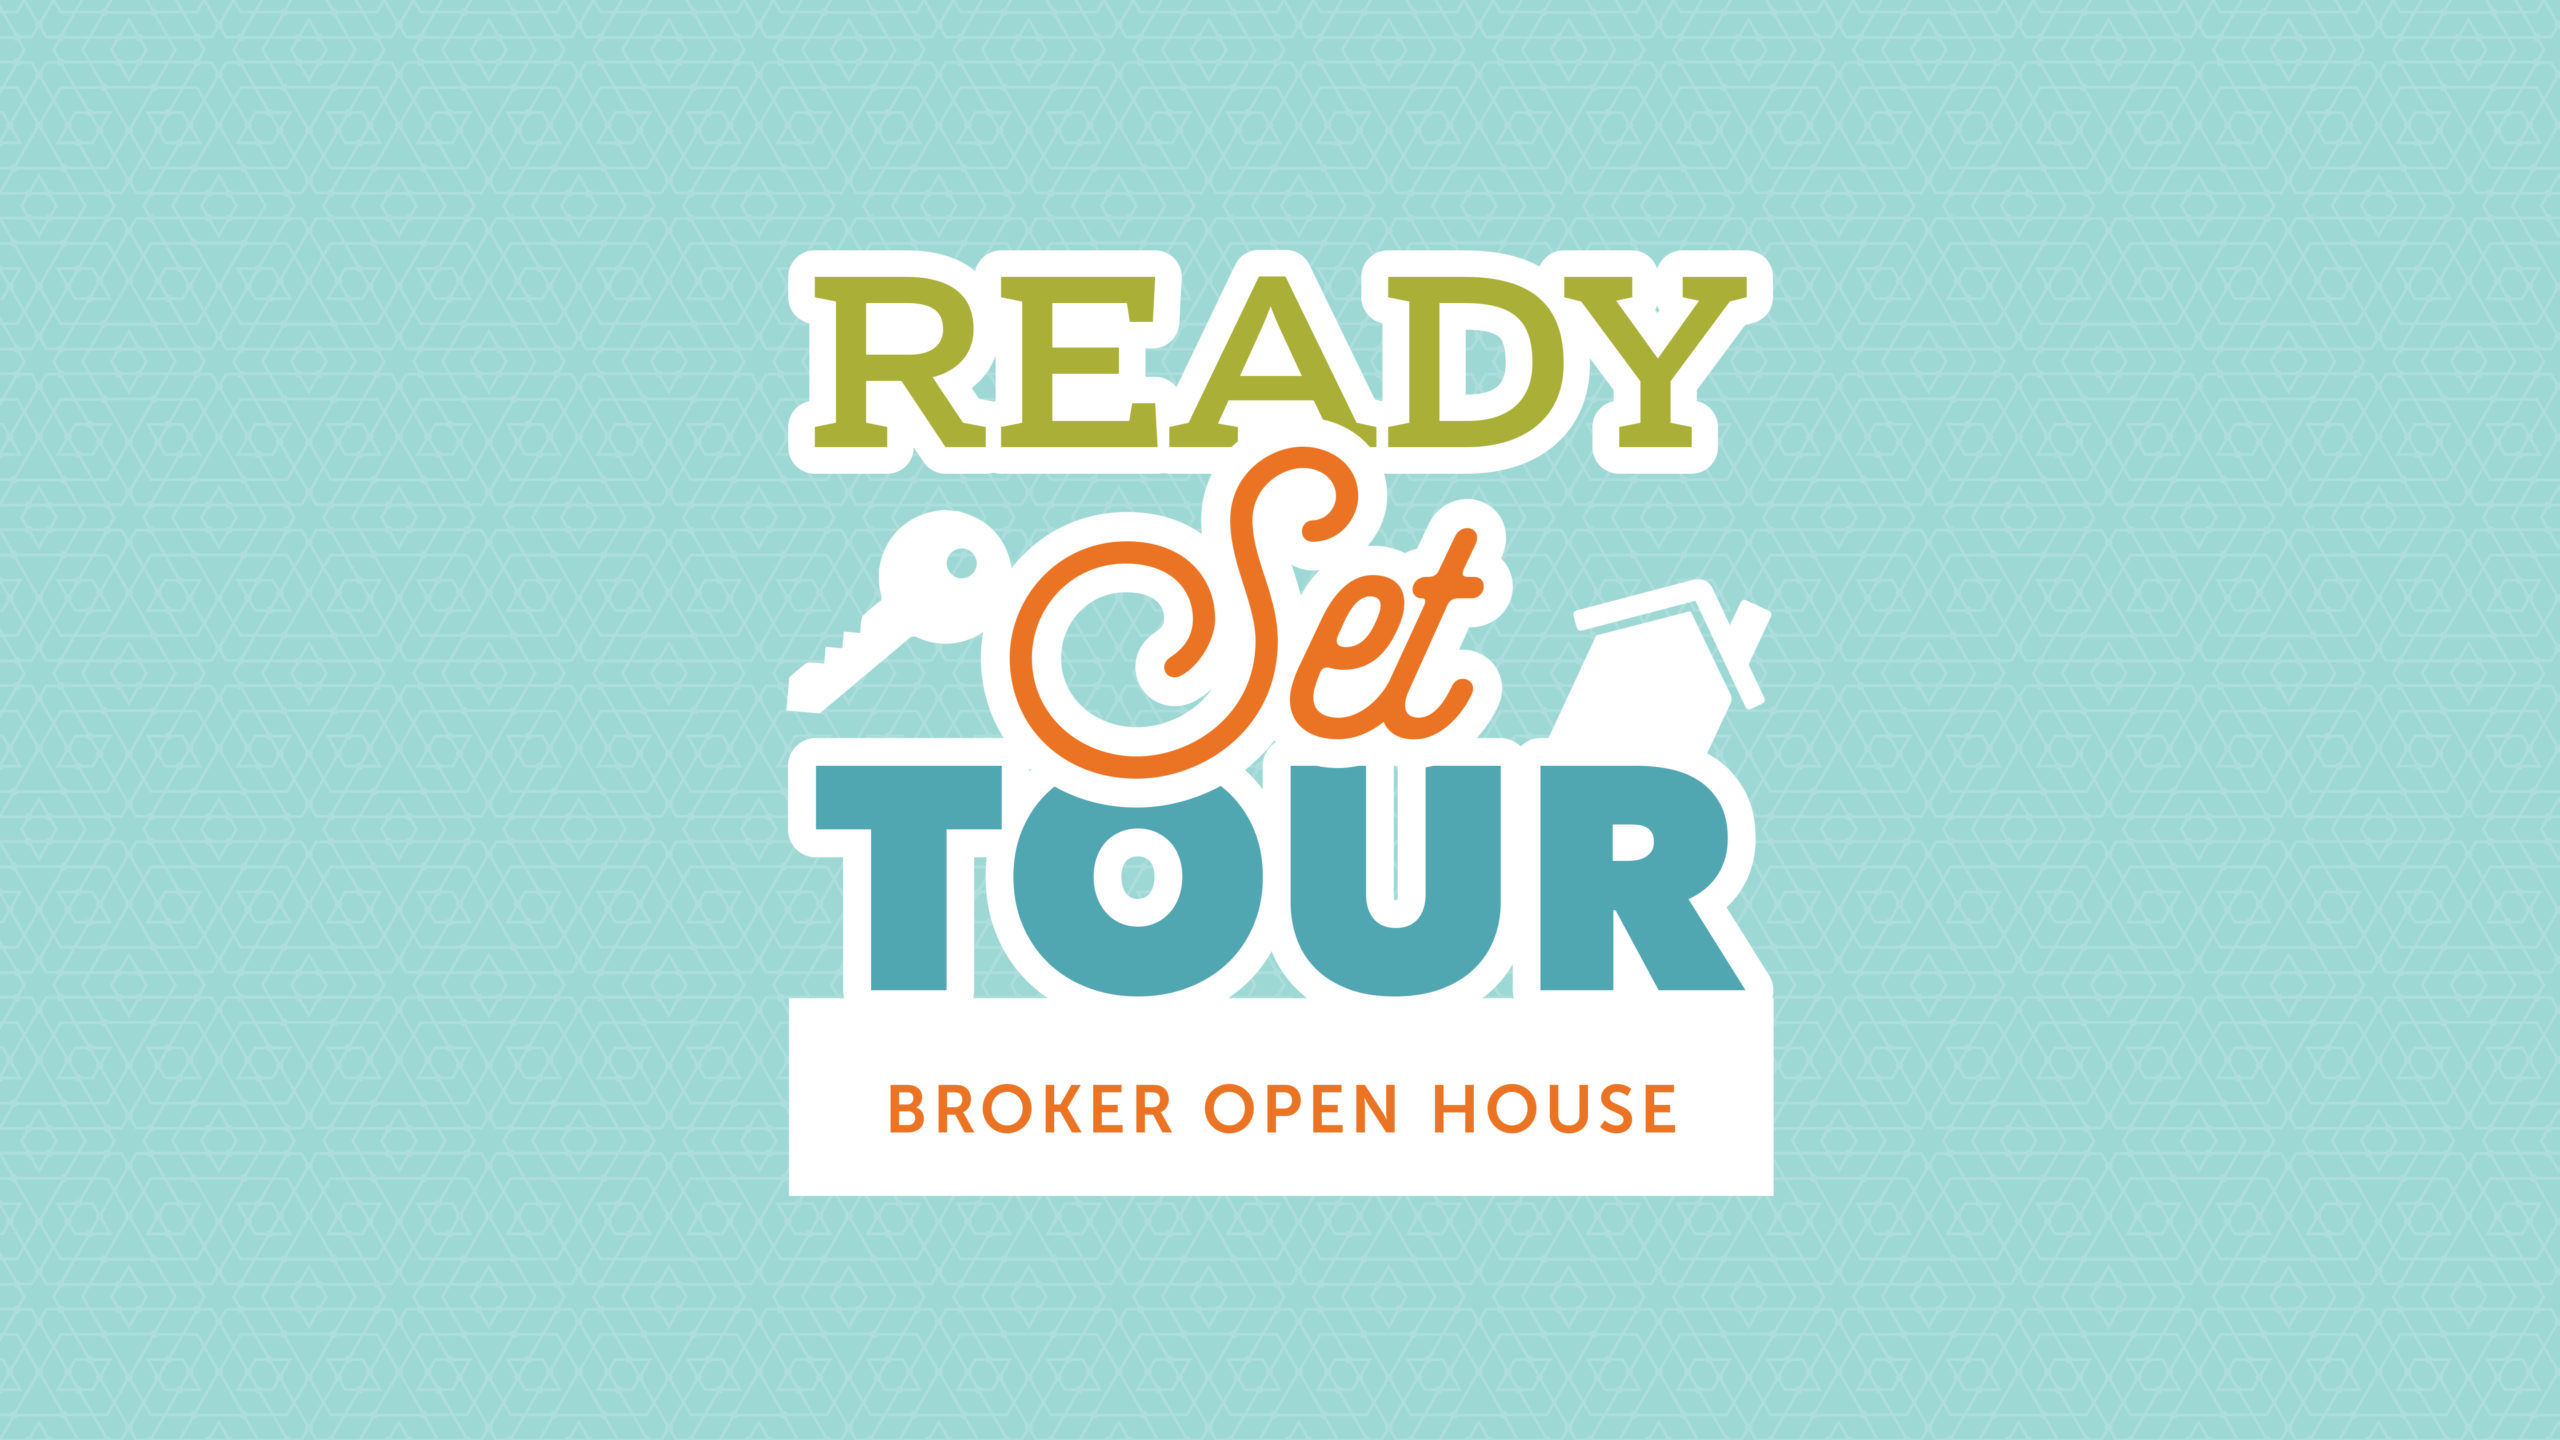 Ready, Set, Tour Broker Open House